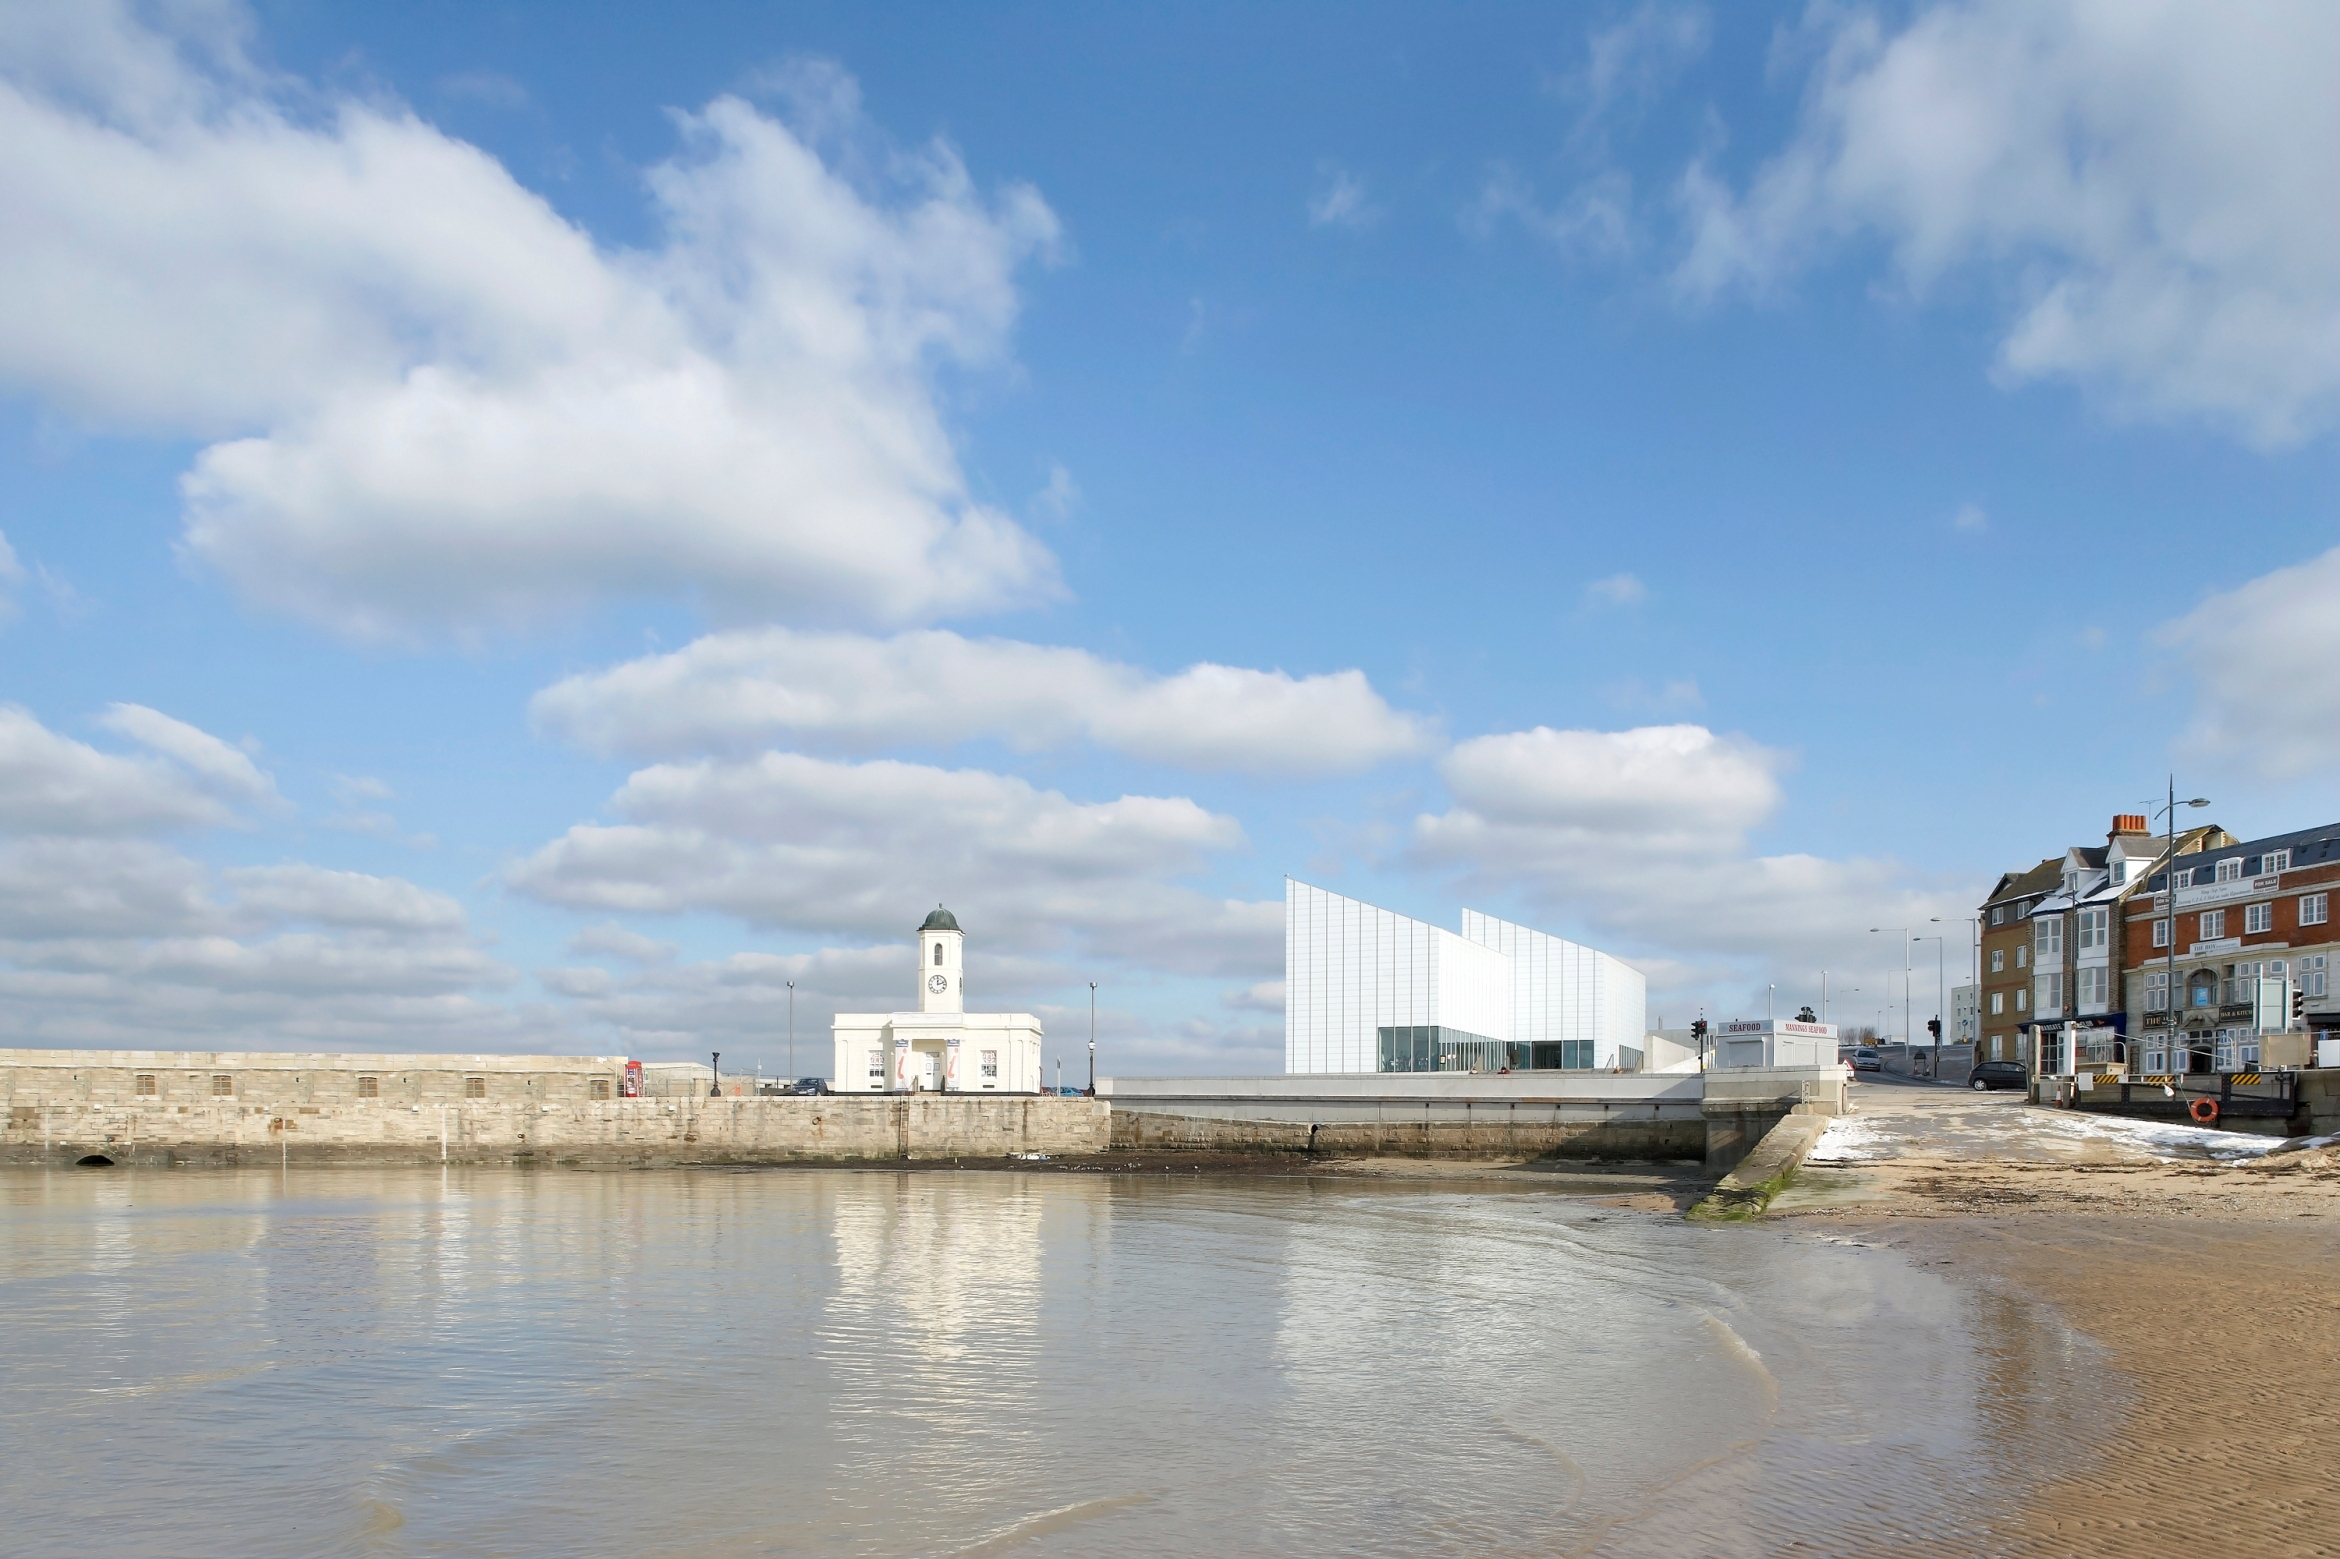 Turner Contemporary